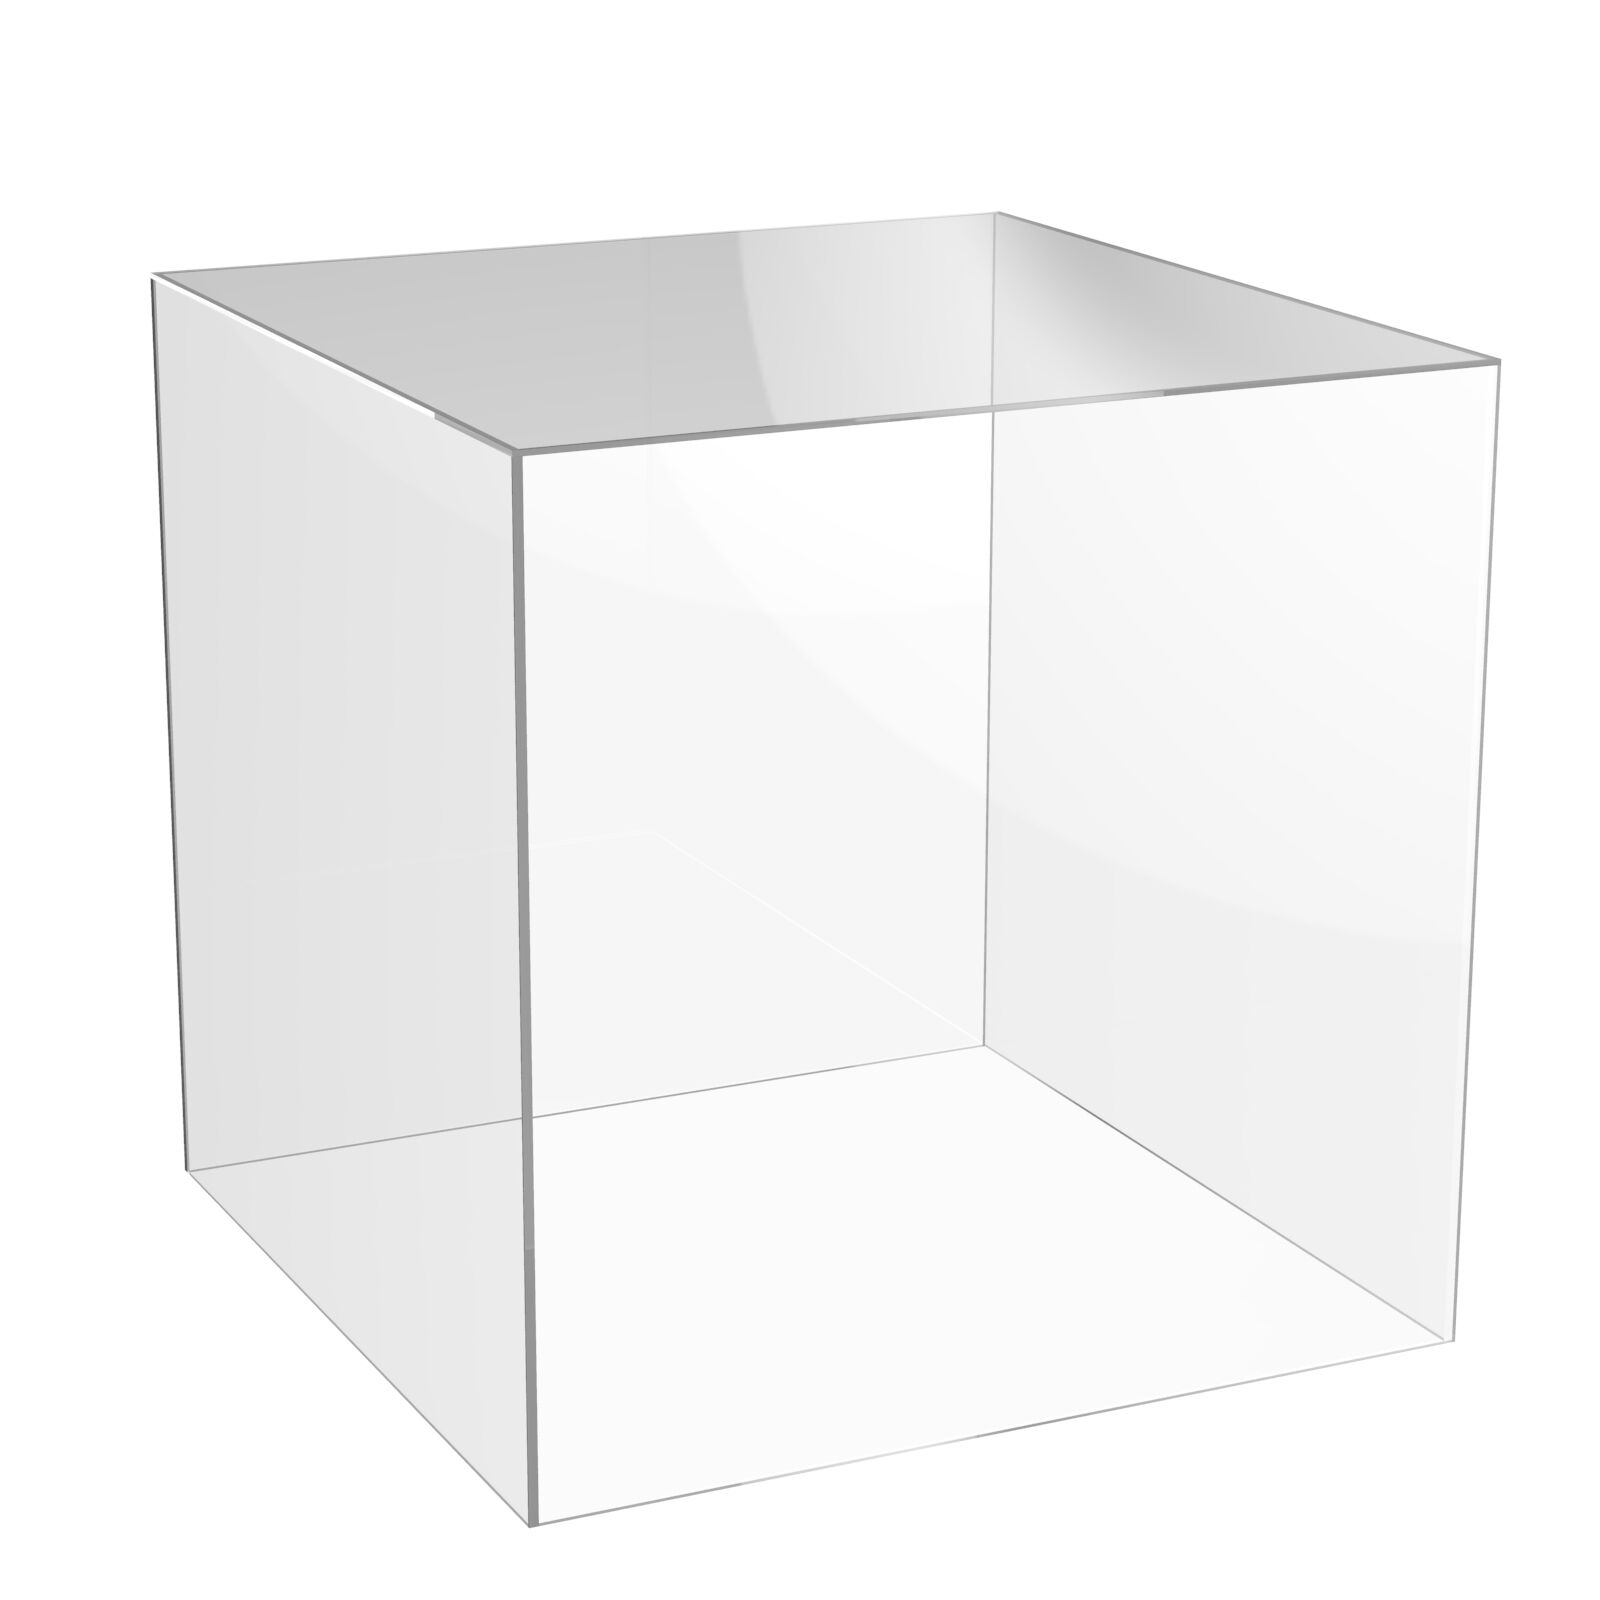 acrylic cube display stand square 5 sided box perspex tray case shop holder picclick uk. Black Bedroom Furniture Sets. Home Design Ideas